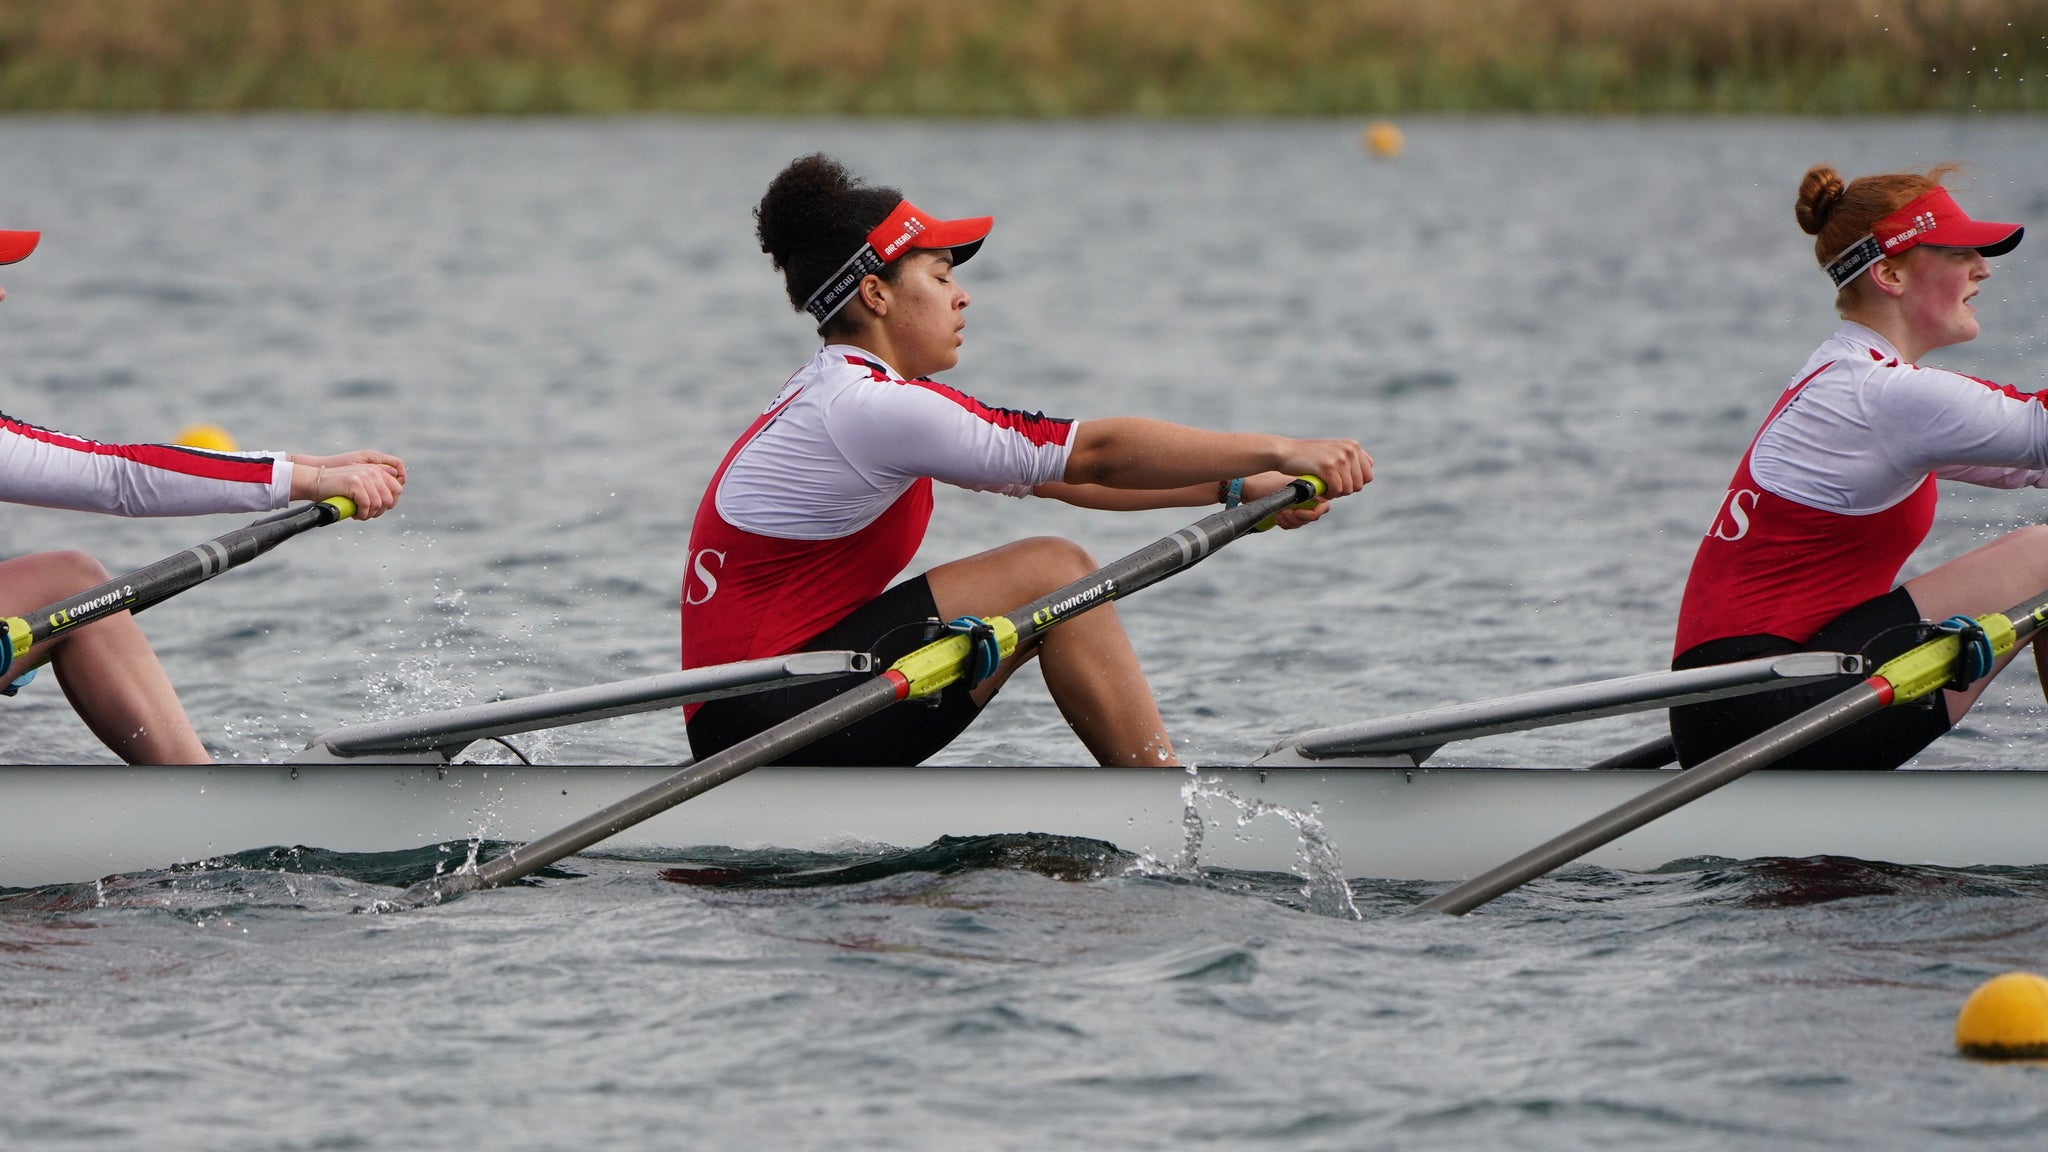 Junior Sculling Regatta 2019